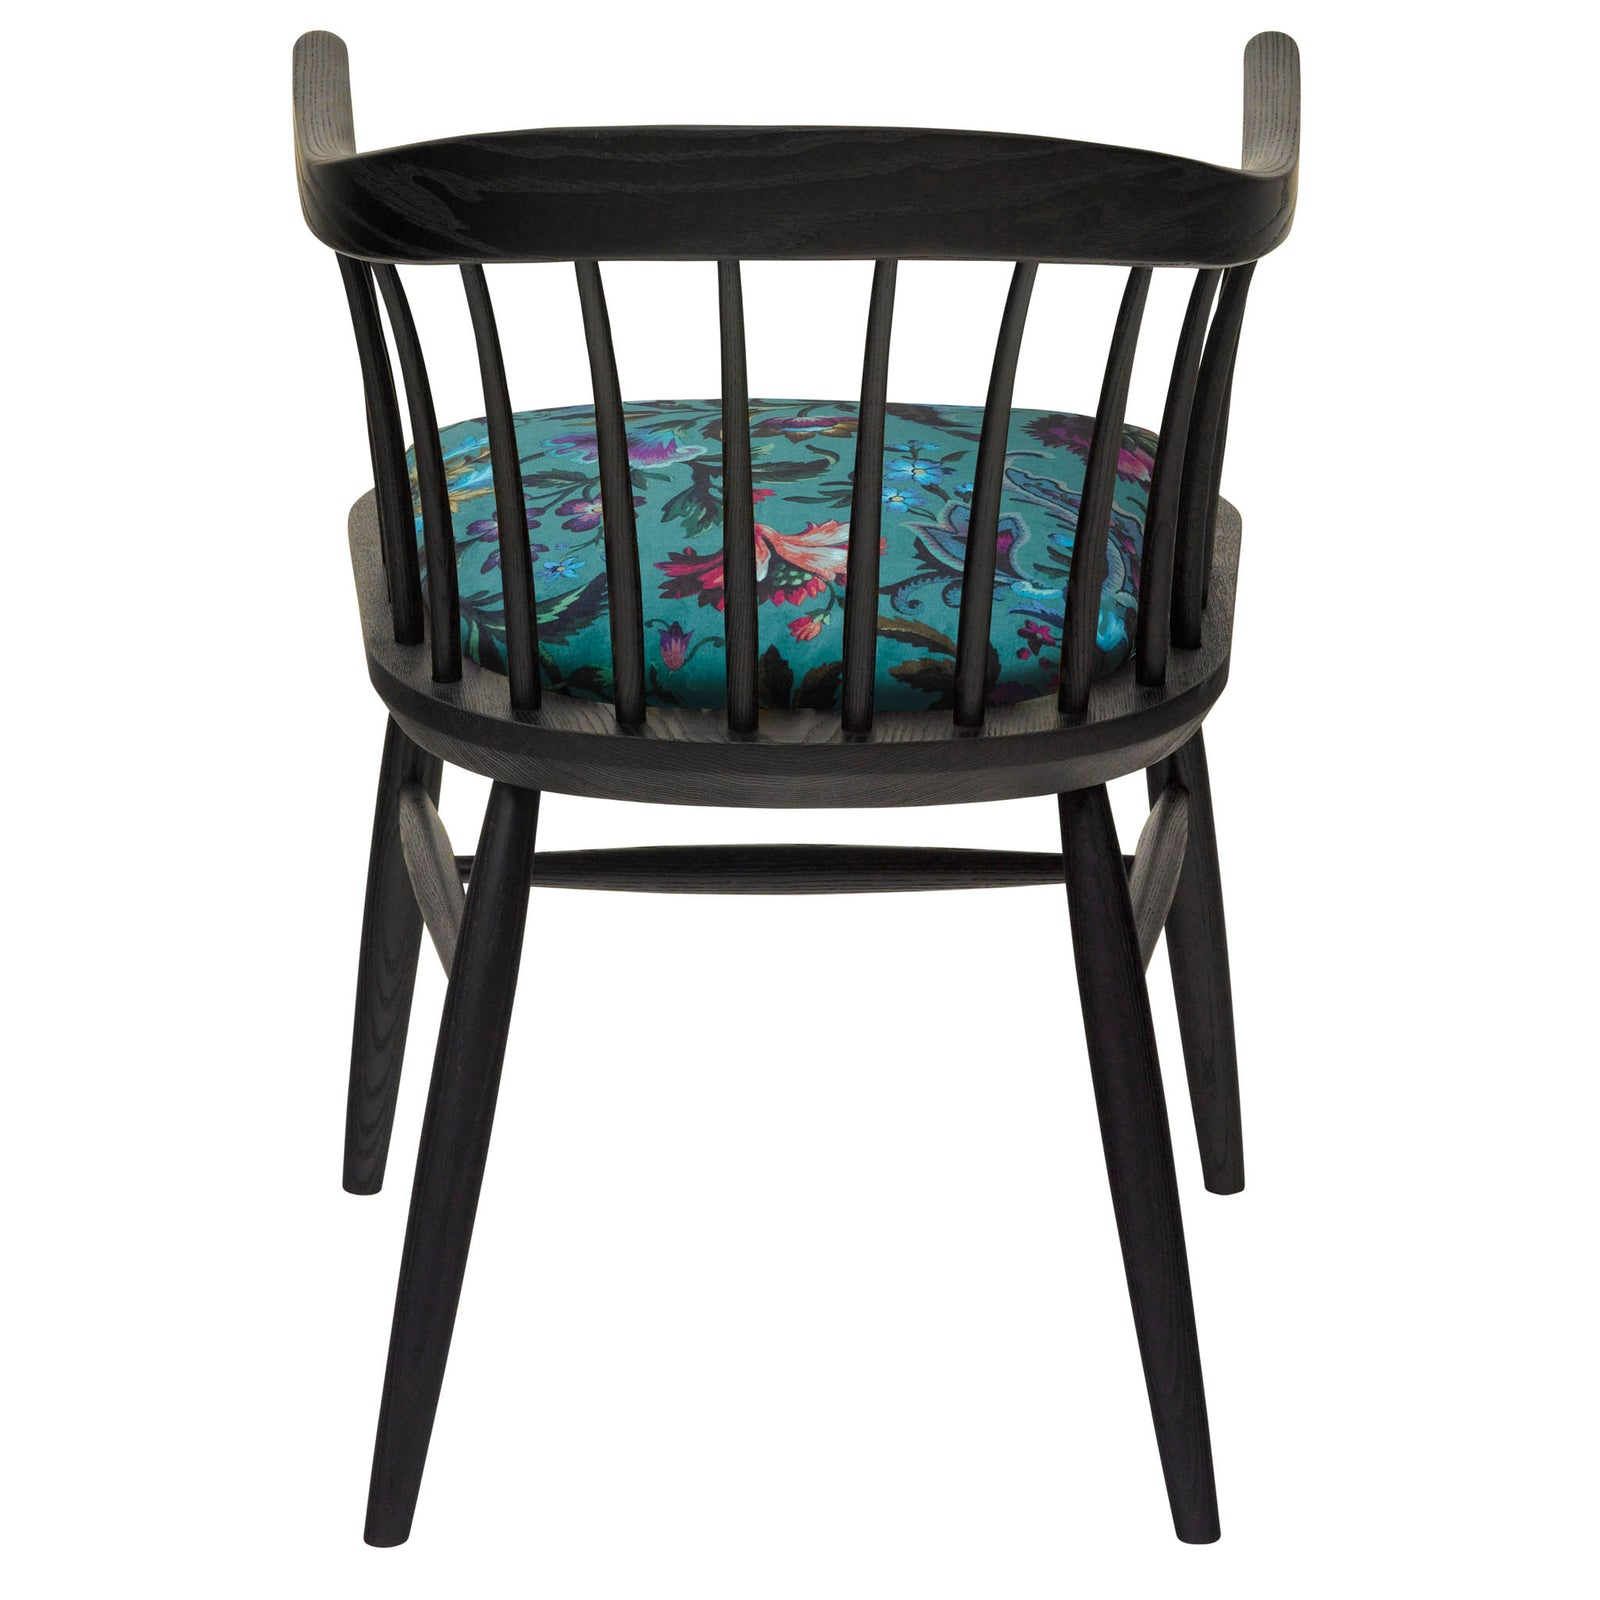 The Darwin Armchair Upholstered in House of Hackney Florika British Velvet with A Black Finish